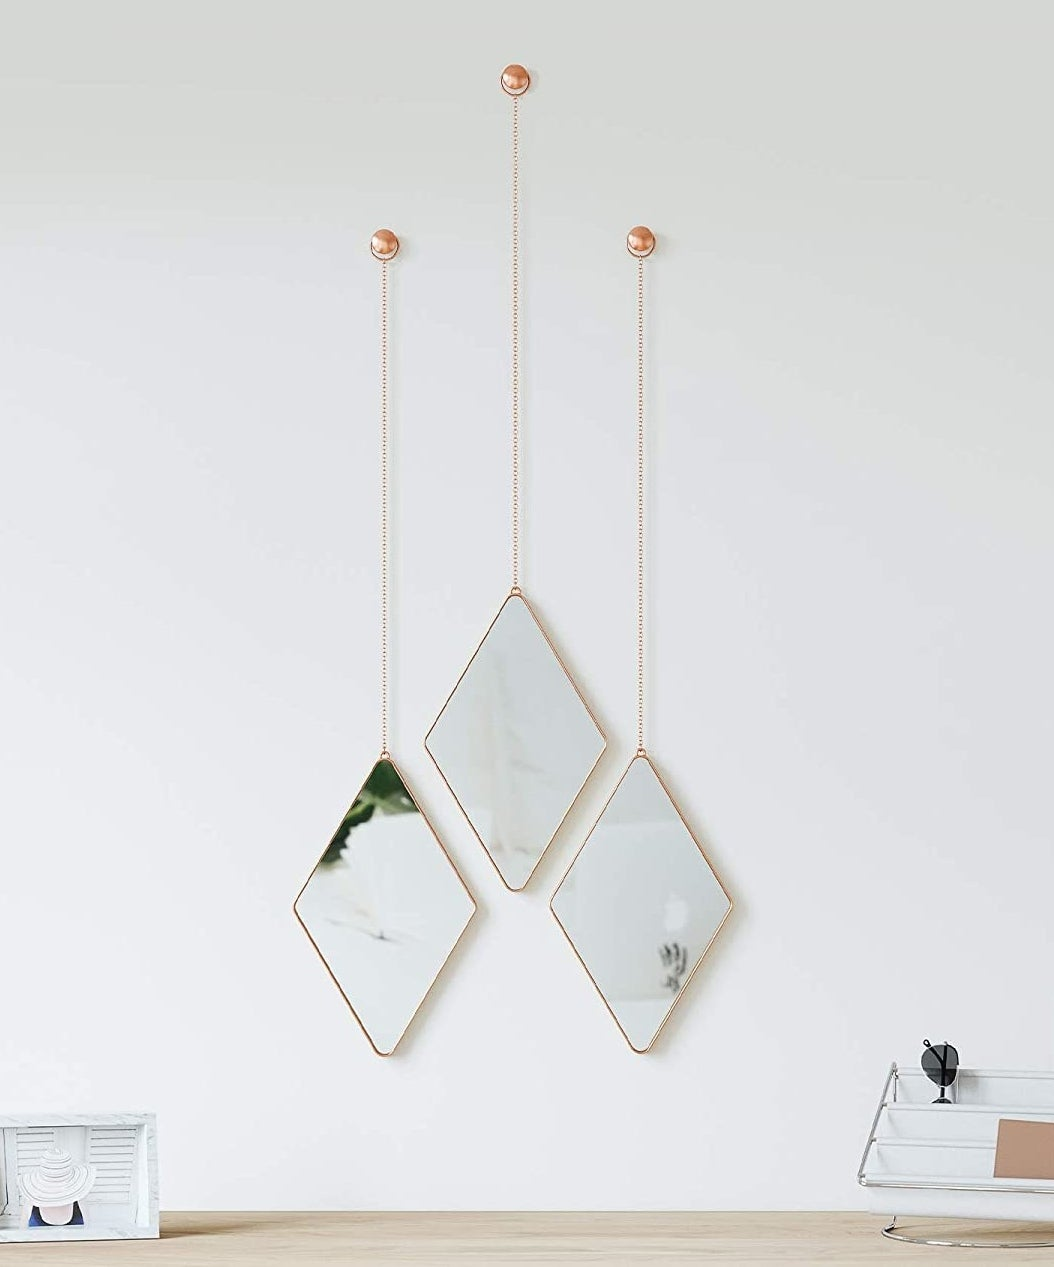 three diamond shaped mirrors hanging from dainty chains on a wall